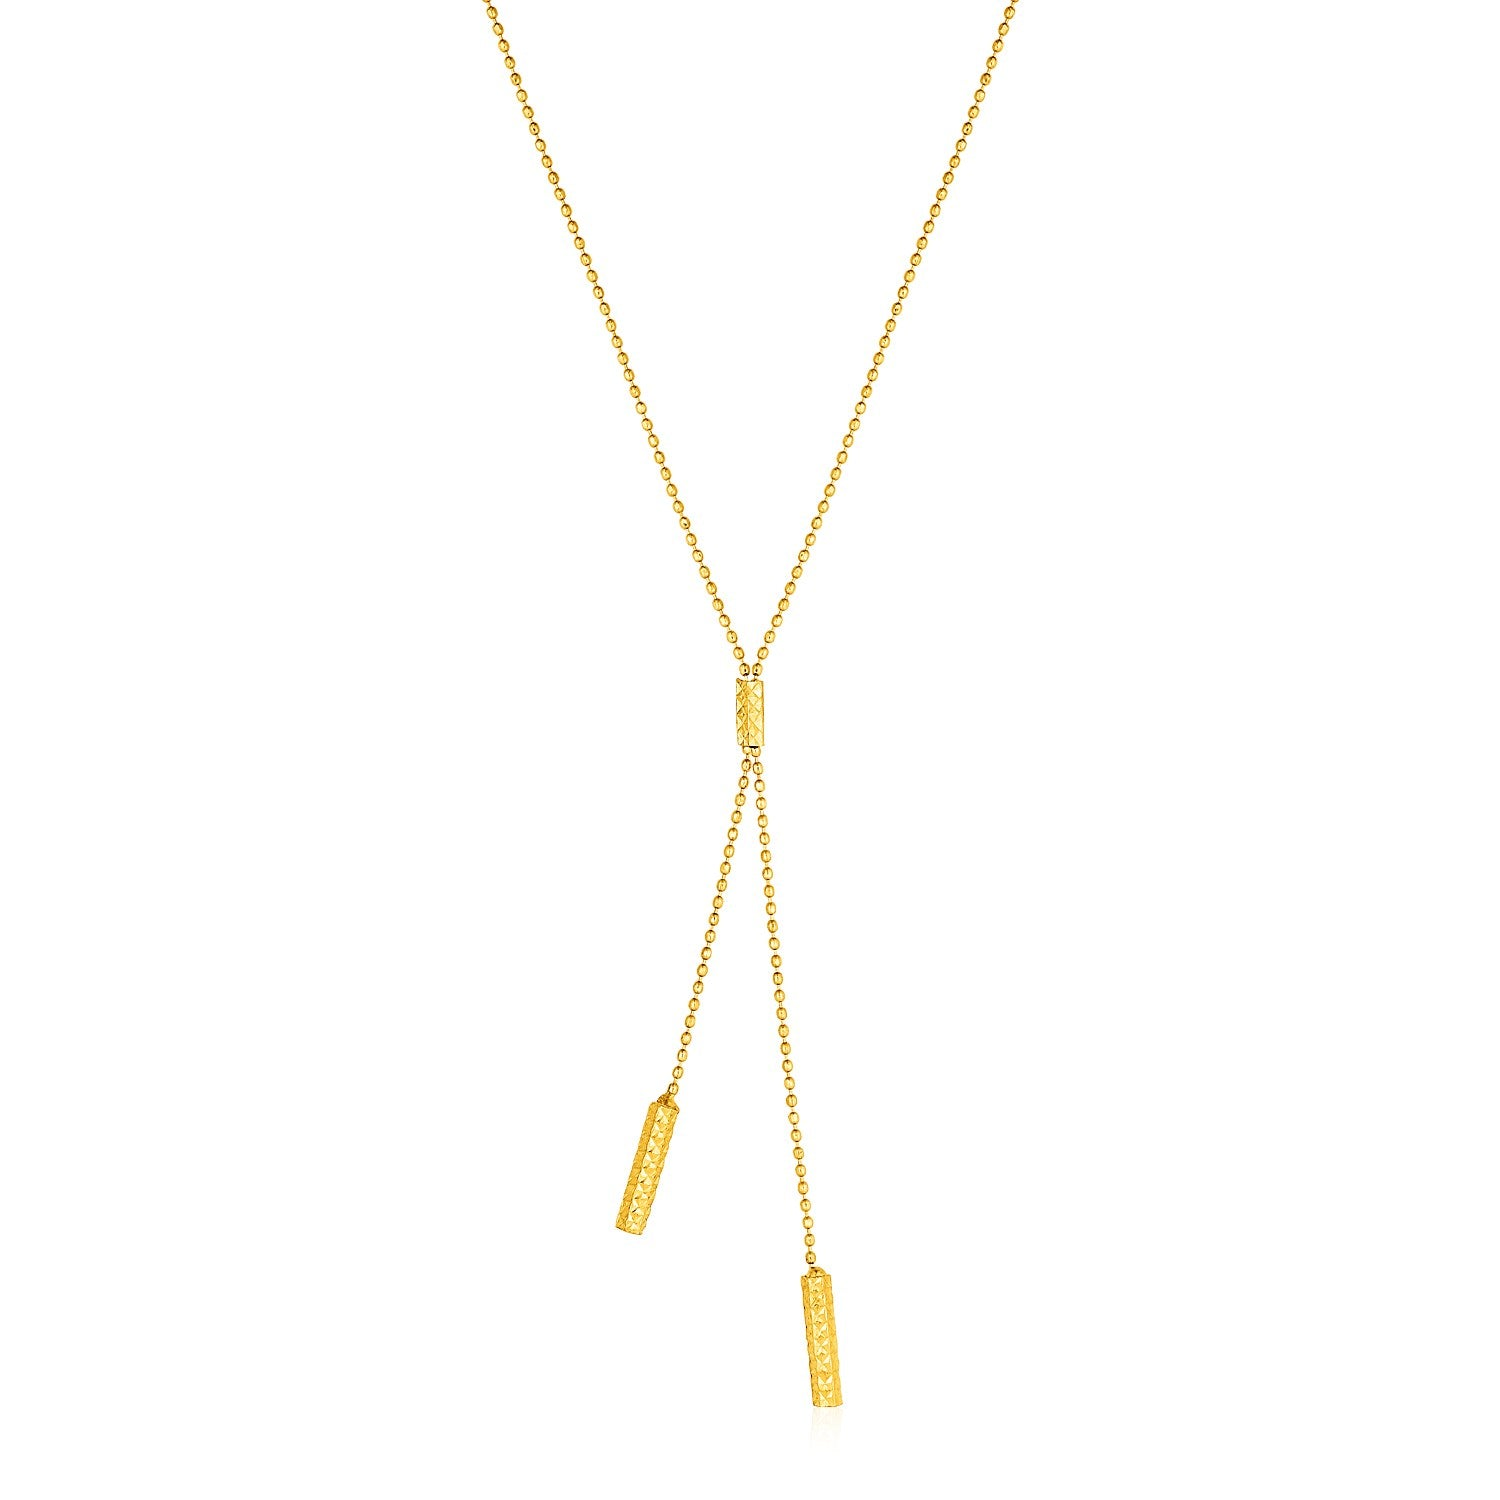 Lariat Necklace with Textured Bars in 10K Yellow Gold